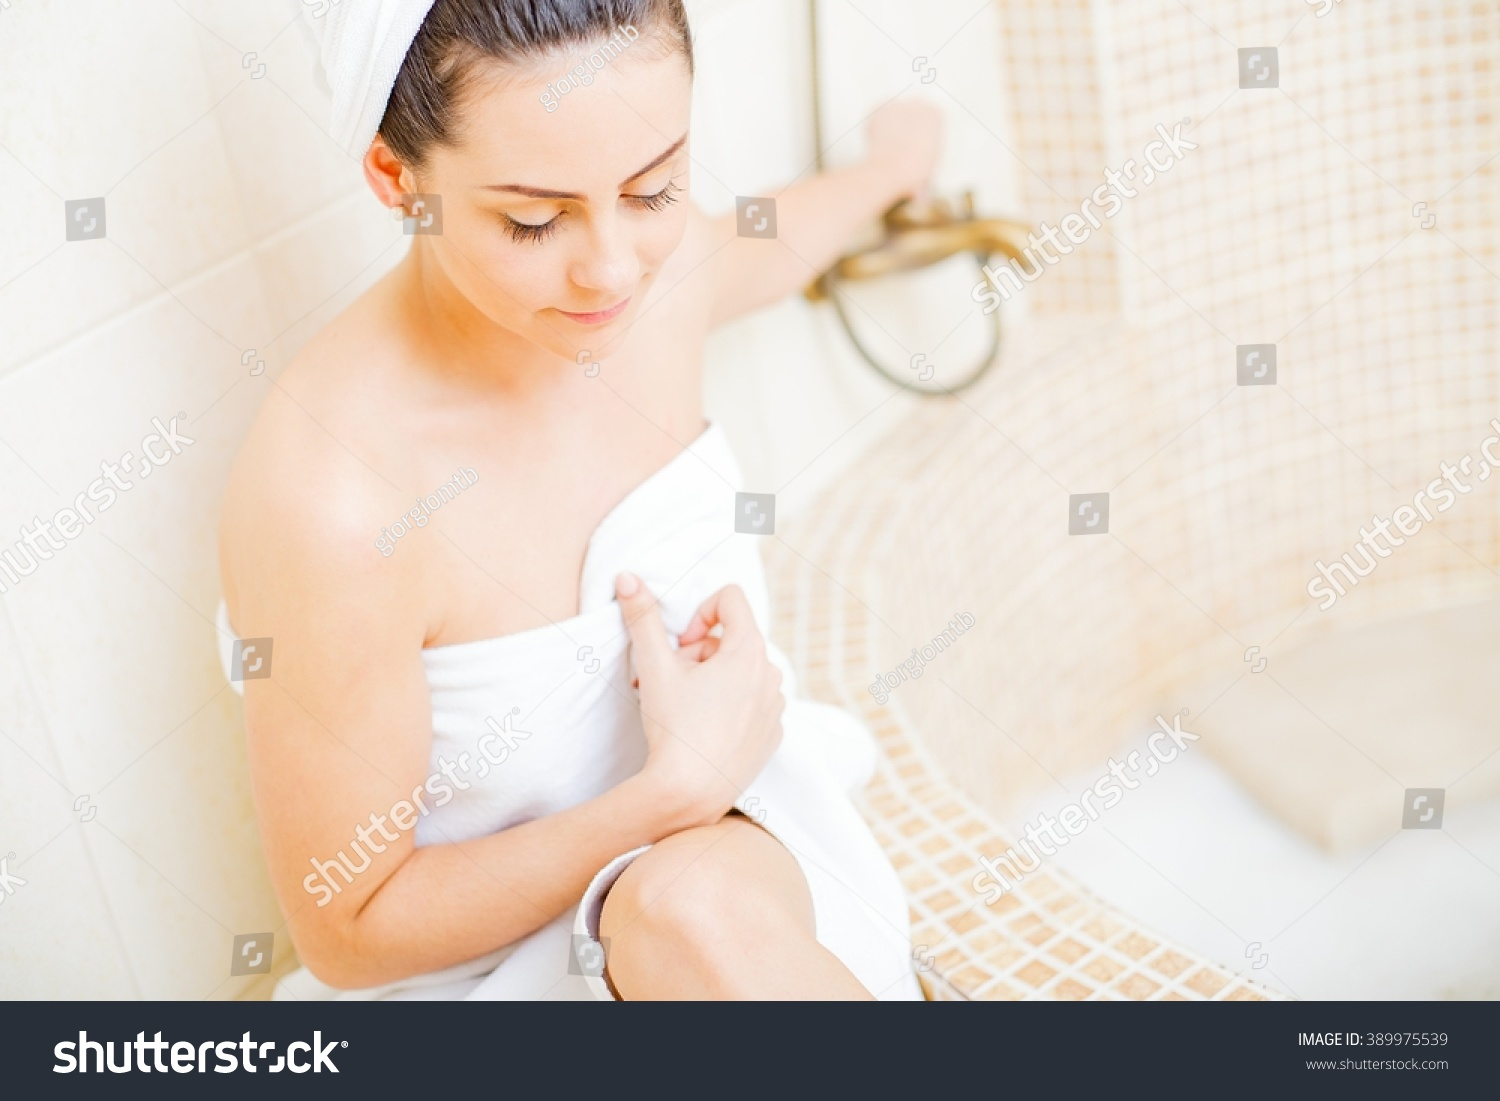 Hot girl bathroom white towel stock photo 389975539 for Bathroom hot images